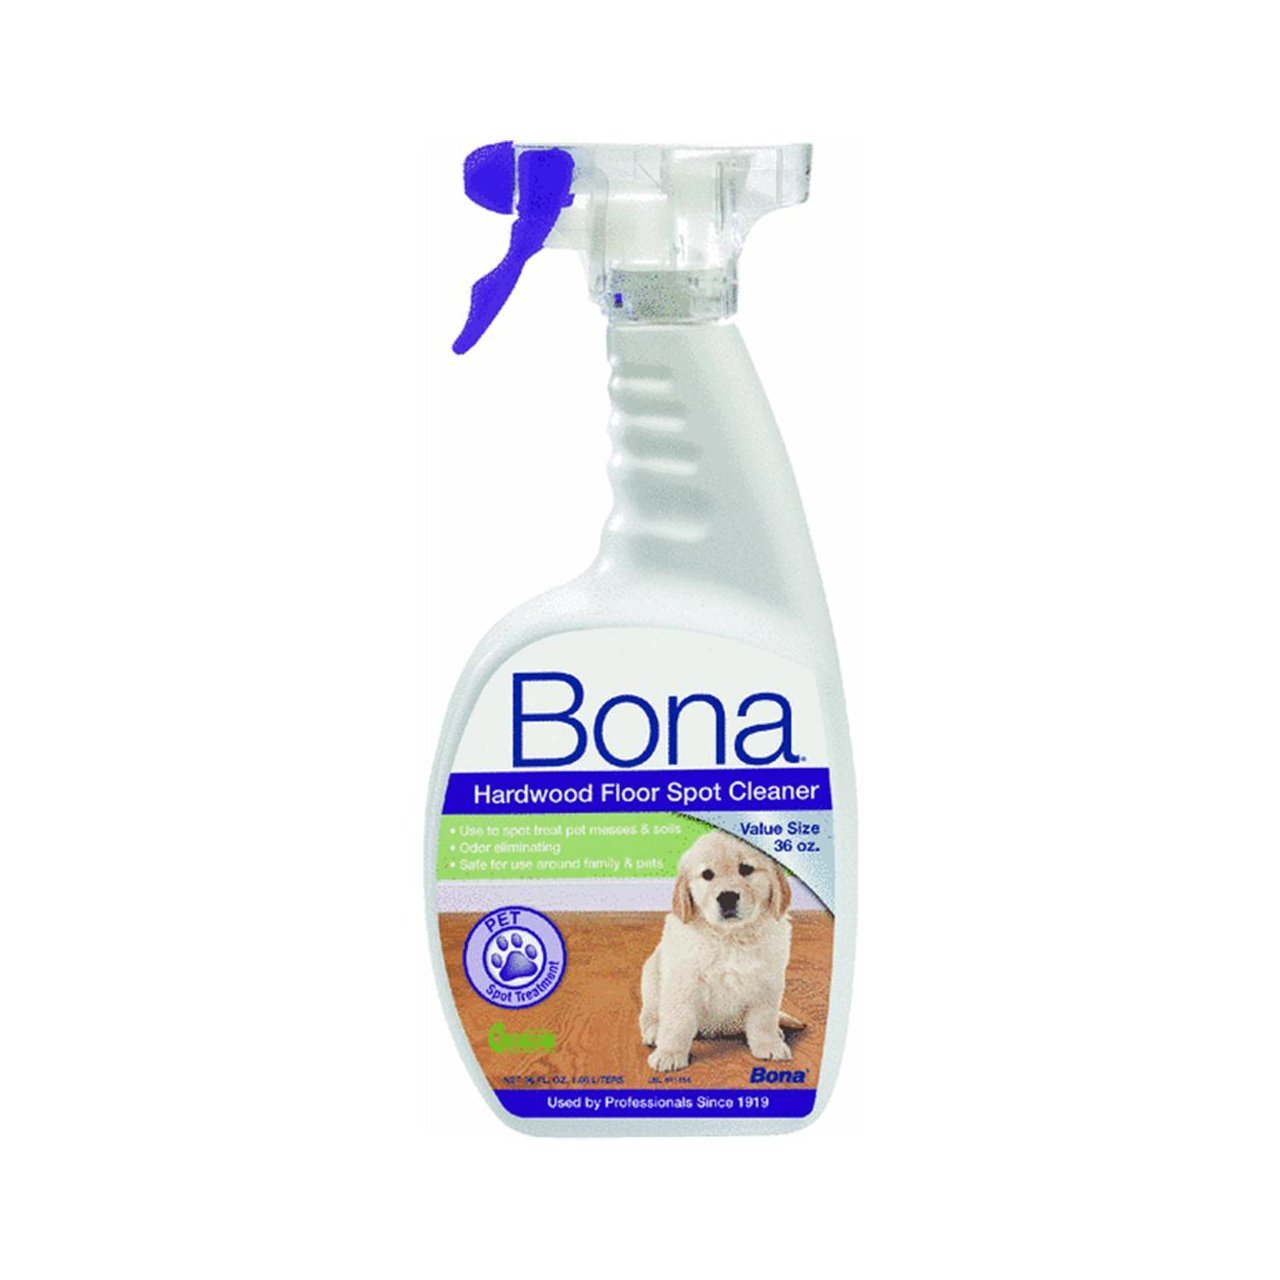 Bona Hardwood Floor Spot Cleaner Pet 36oz Home Garden